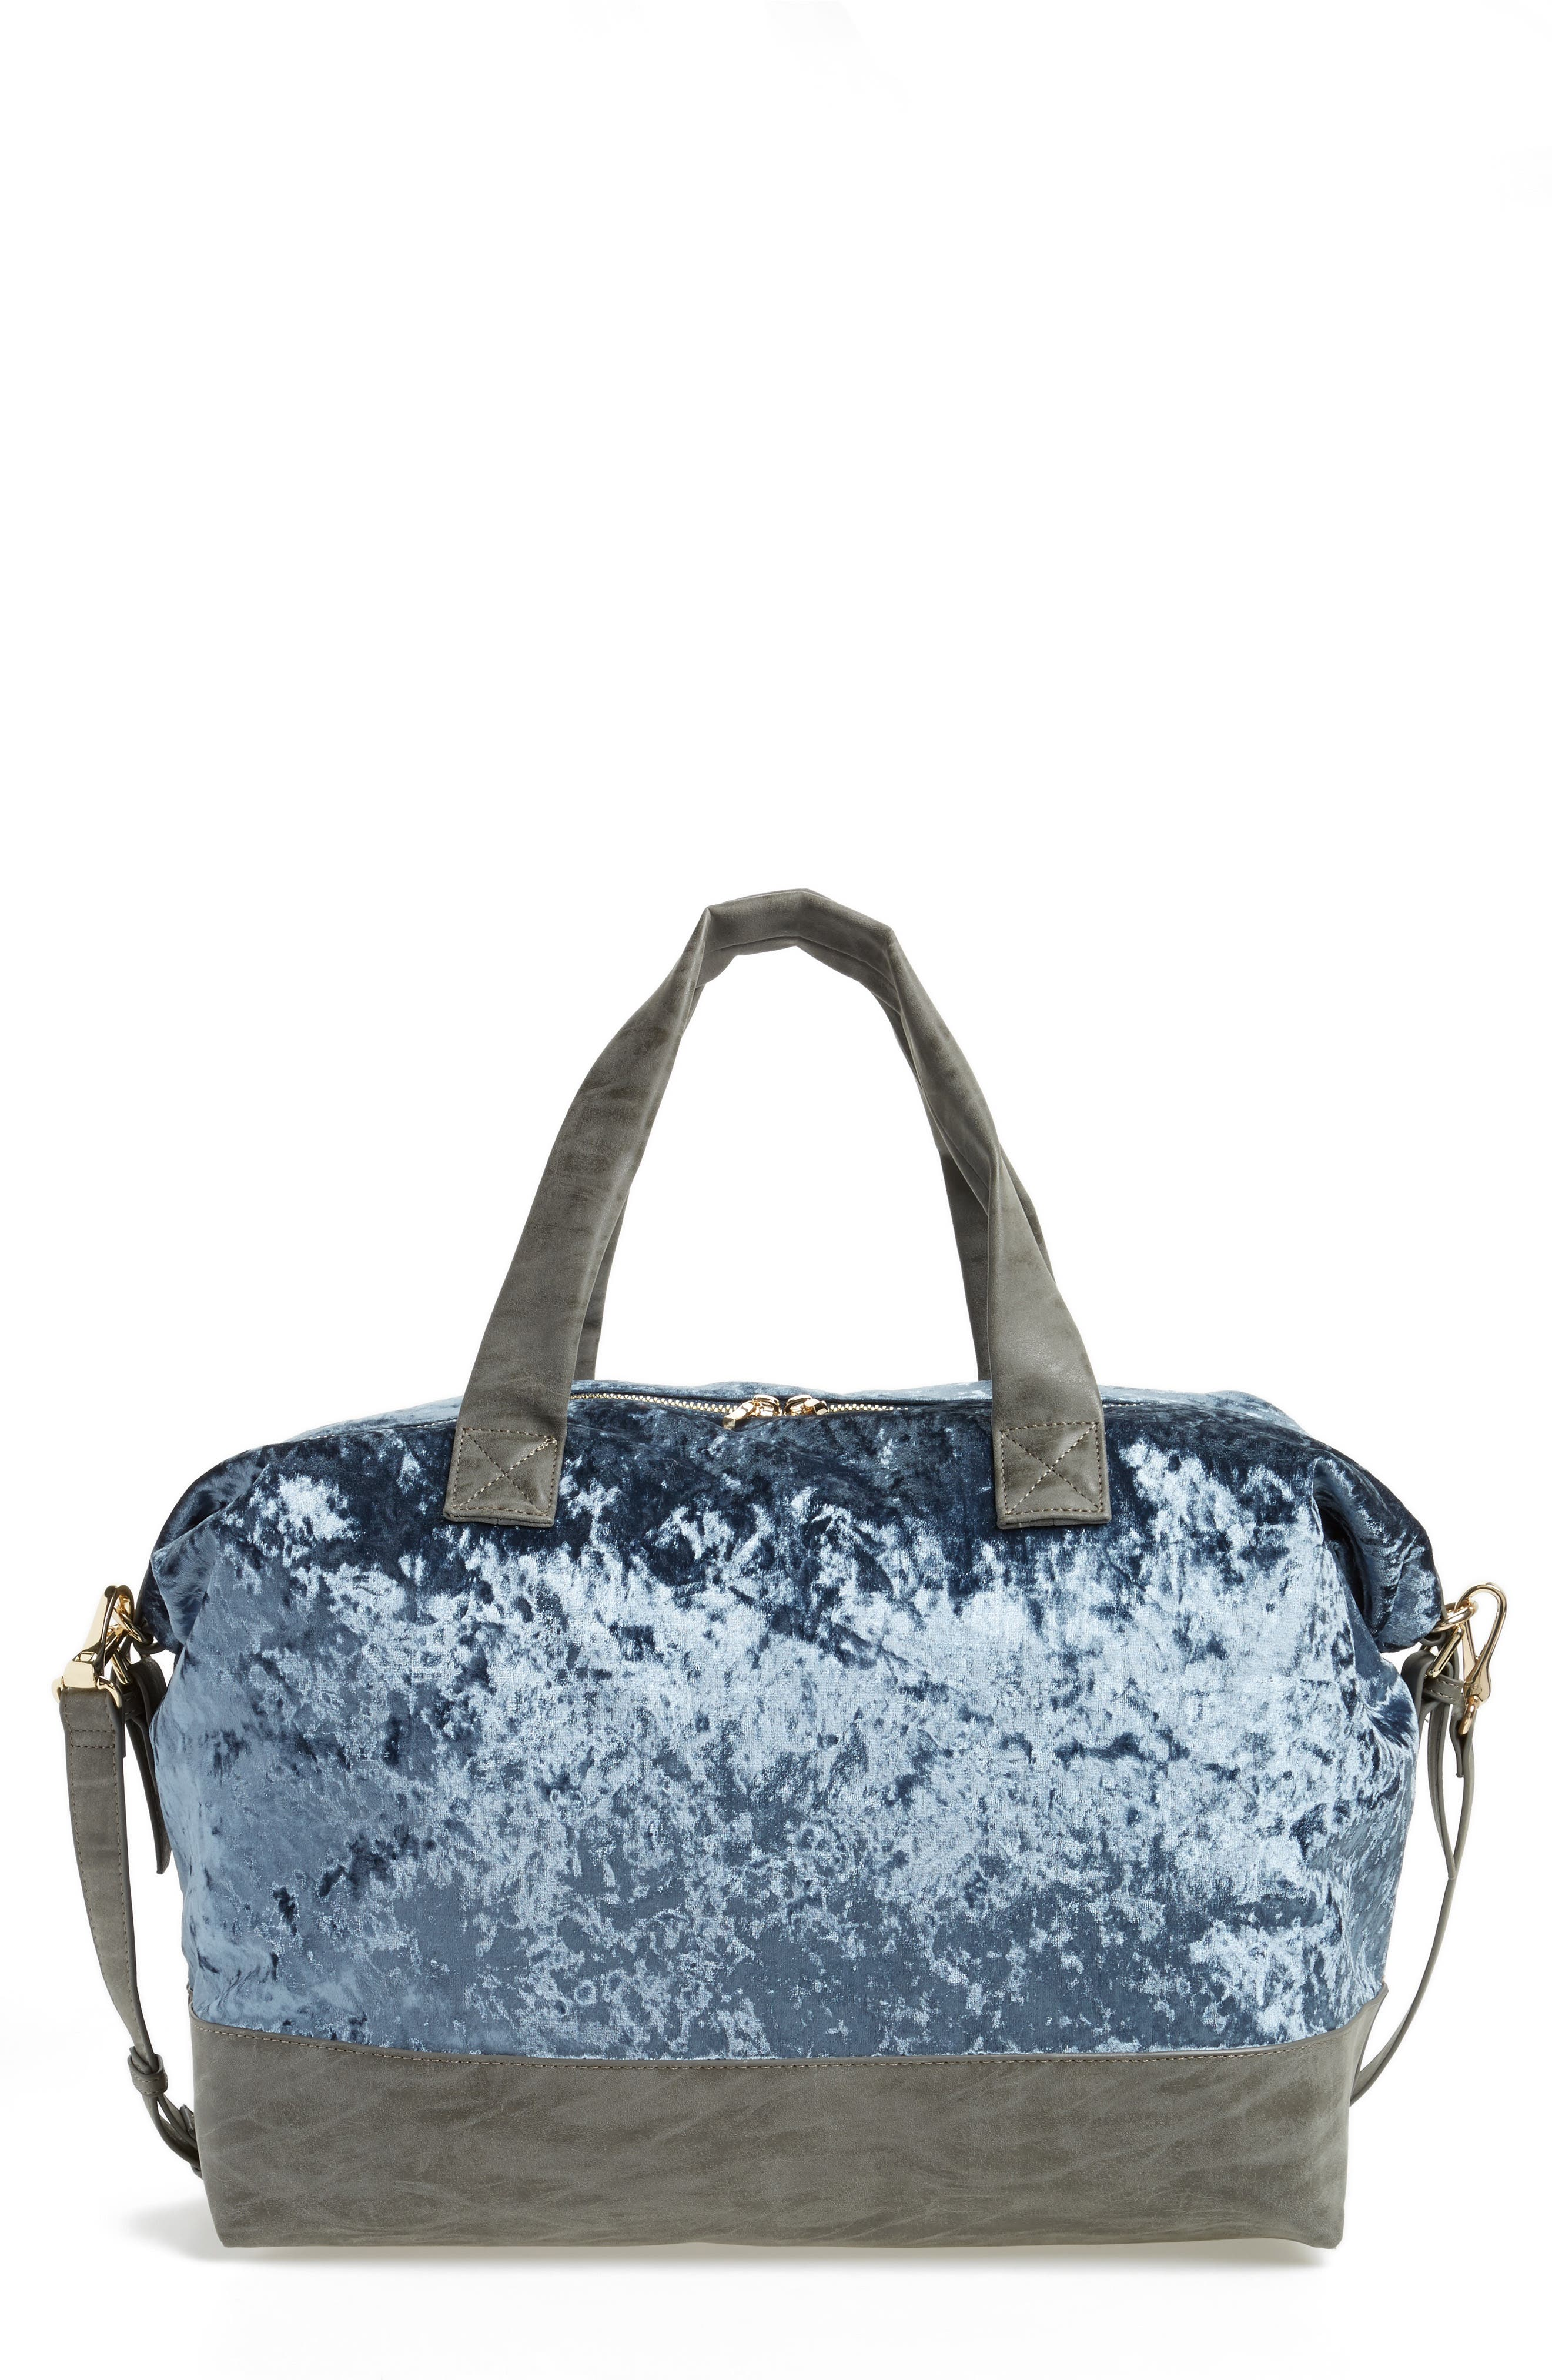 Venti Velvet Duffel Bag,                             Main thumbnail 2, color,